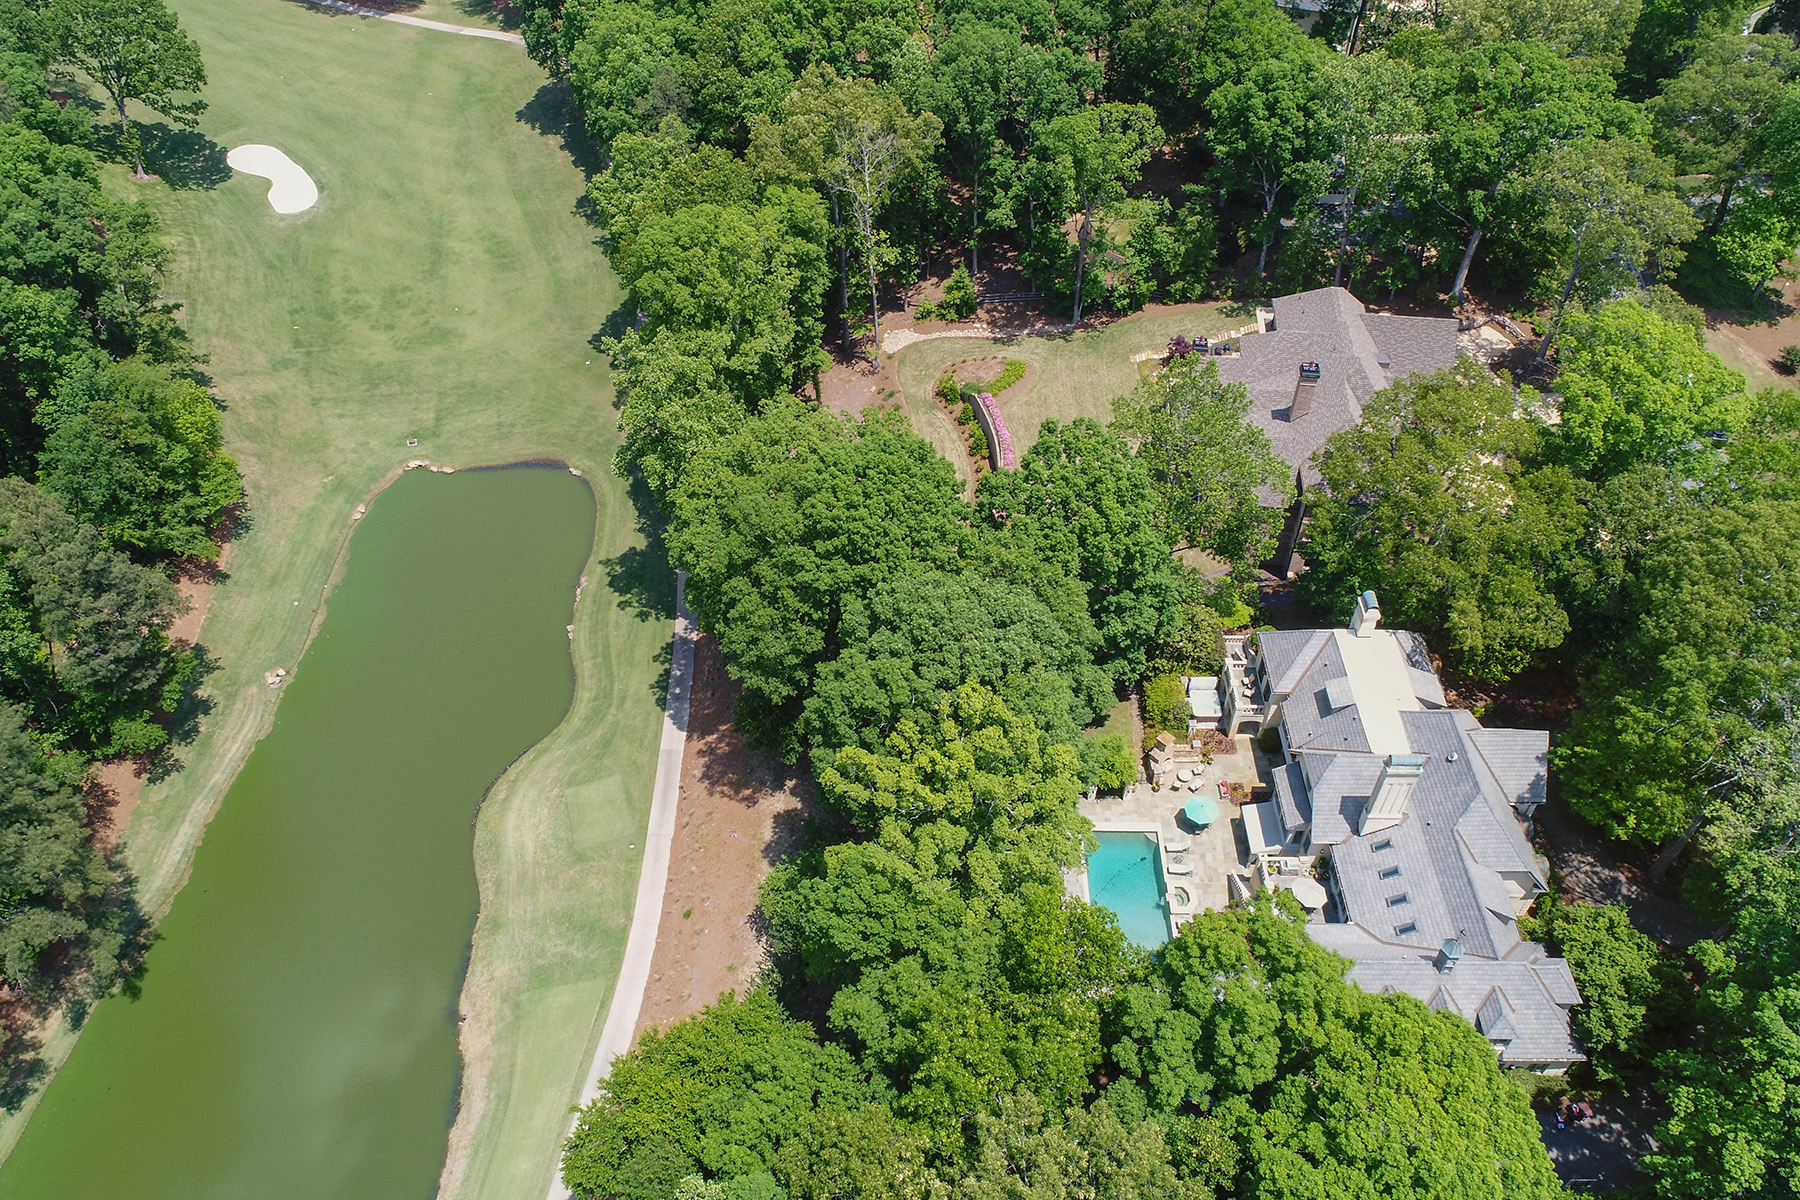 Частный односемейный дом для того Продажа на Grand European-inspired Estate offering Stunning Golf Course Views 660 Atlanta Country Club Drive SE Marietta, Джорджия 30067 Соединенные Штаты